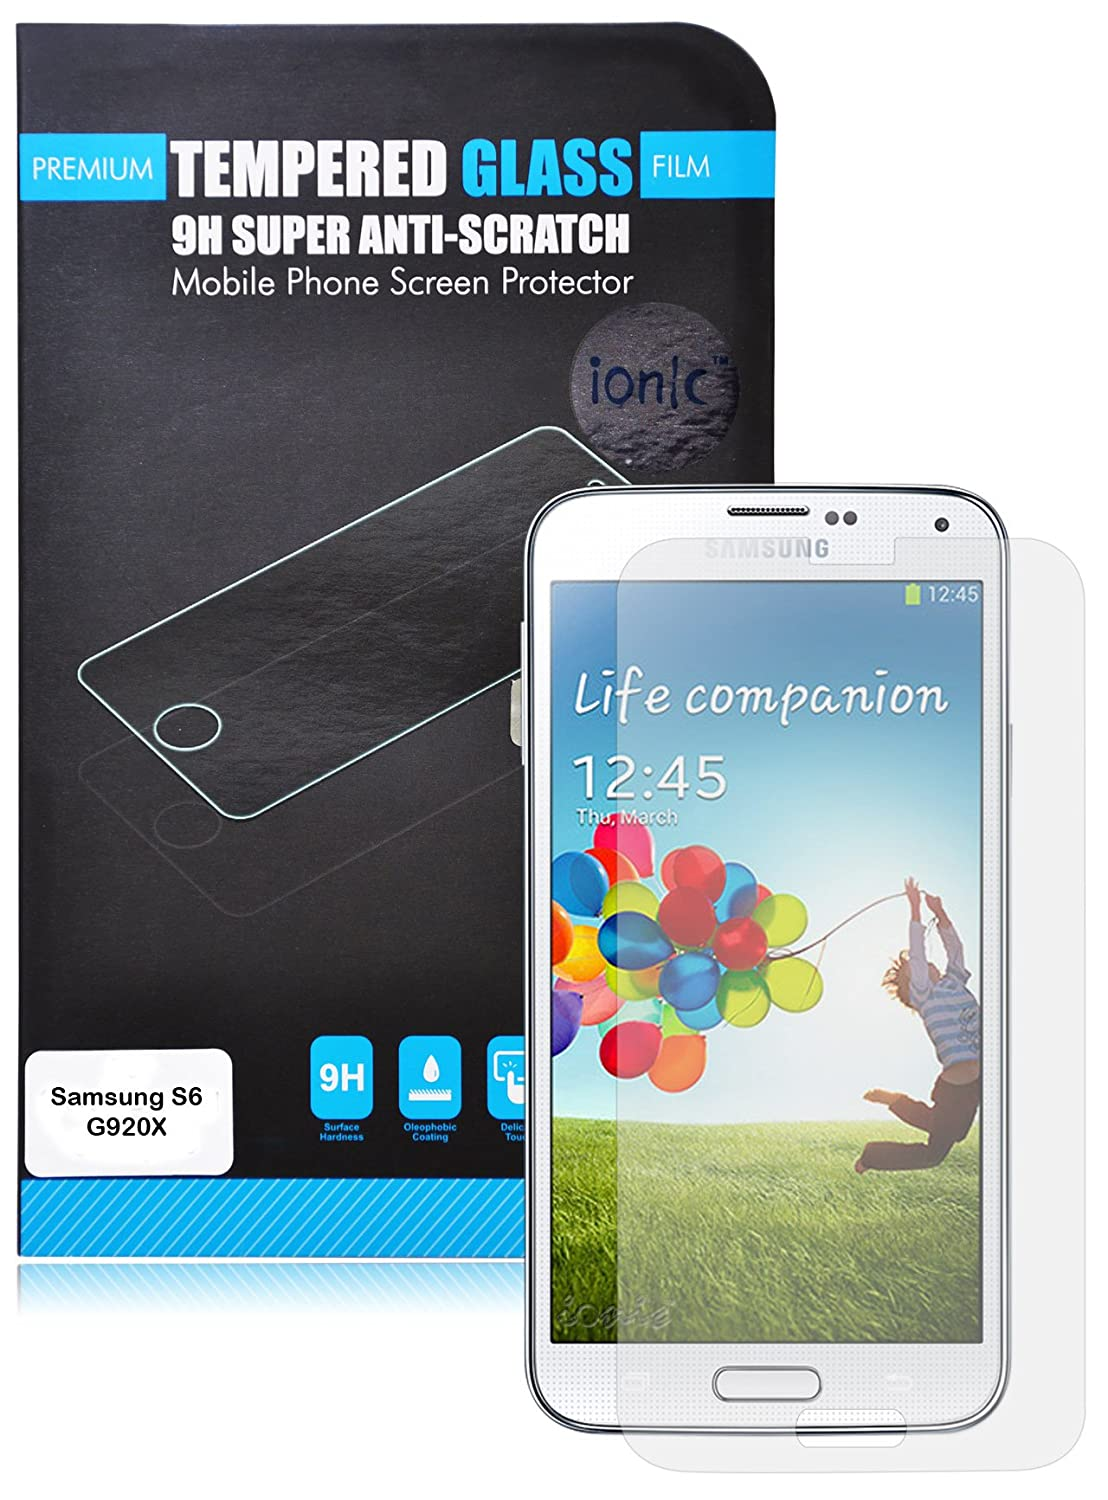 Samsung Galaxy S6 Screen Protector Tempered Glass